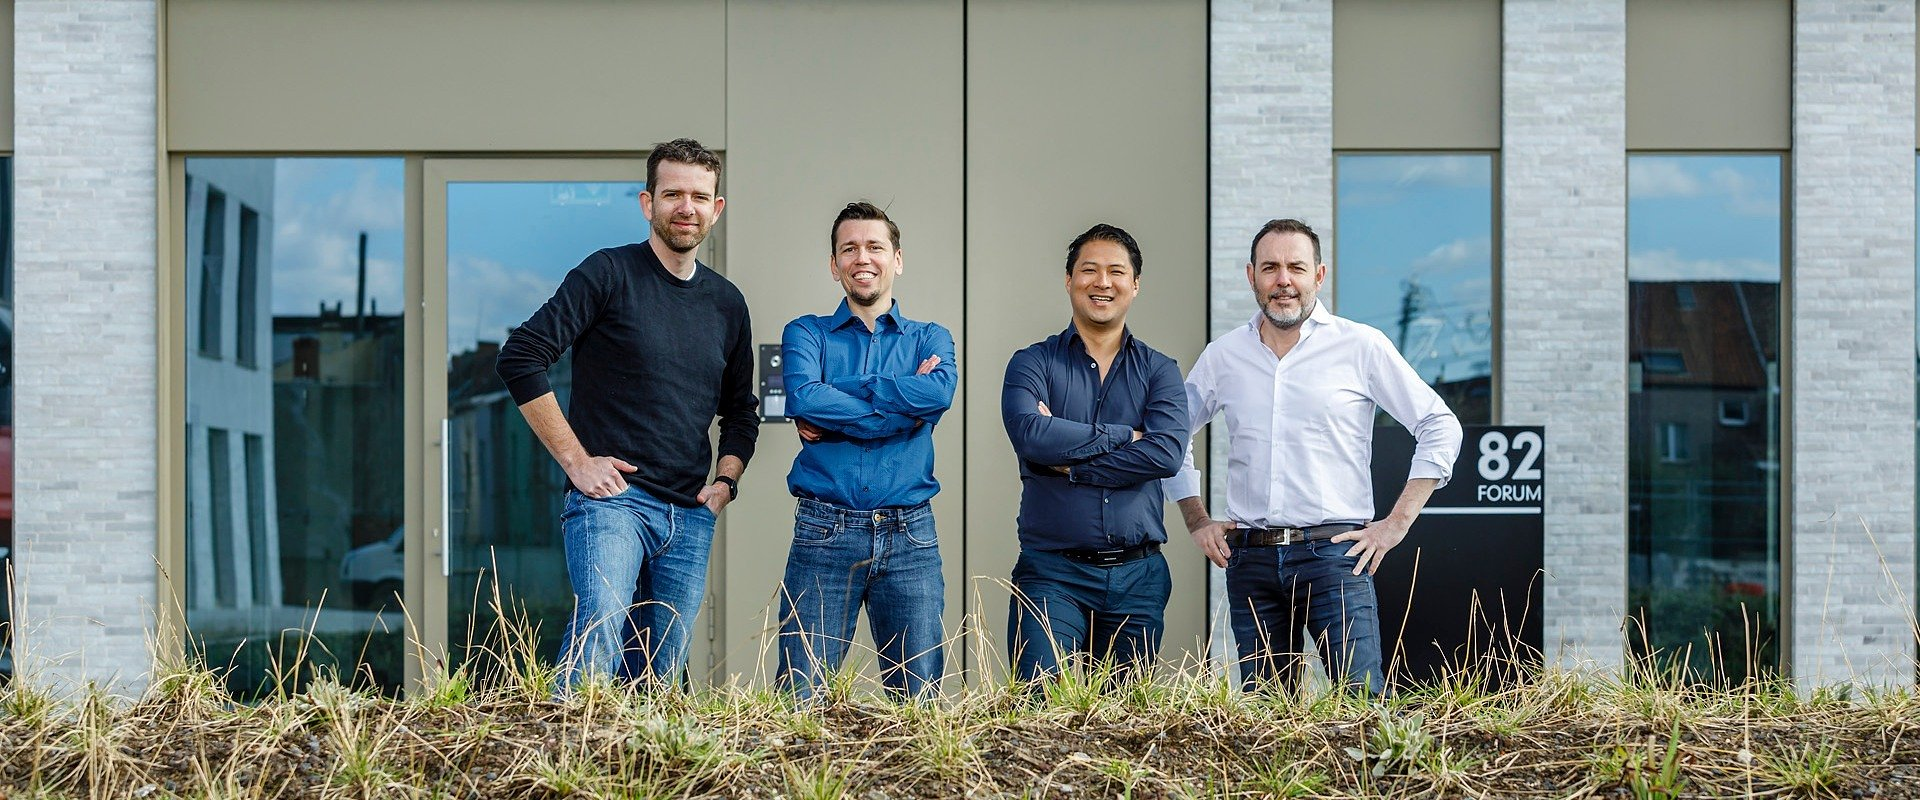 Deliverect raises $65 million as it surpasses 30 million orders processed in the last year, equating to more than $1bn estimated order value